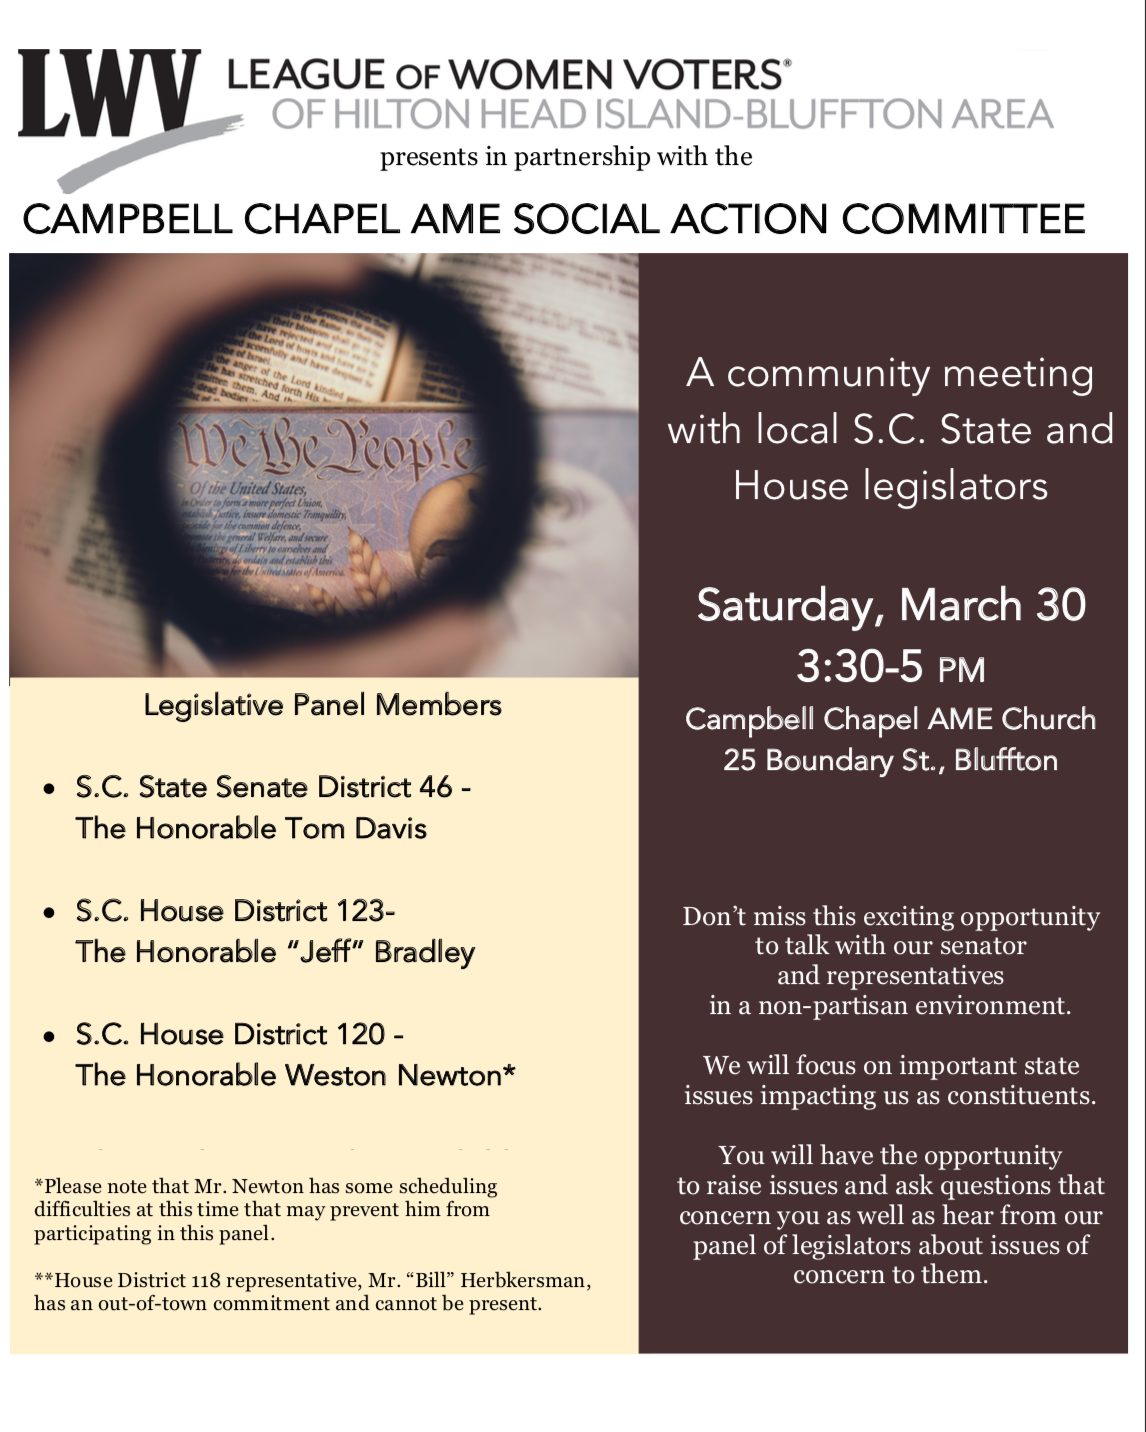 March 30, 3:30-5 pm State Legislator Panel, Campbell AME Chapel